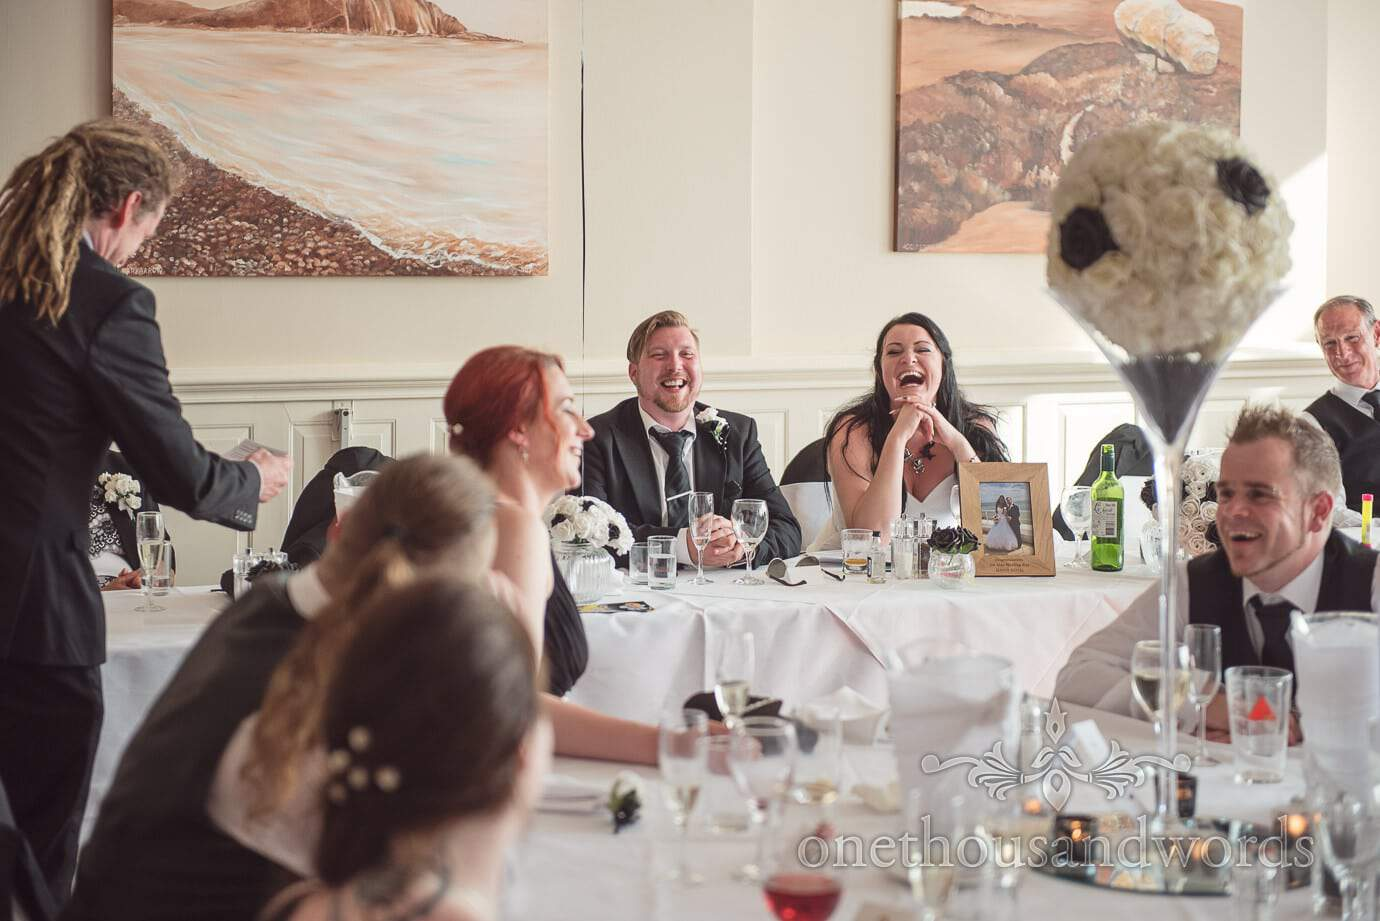 Wedding breakfast questionnaire results reaction at Haven Hotel wedding breakfast